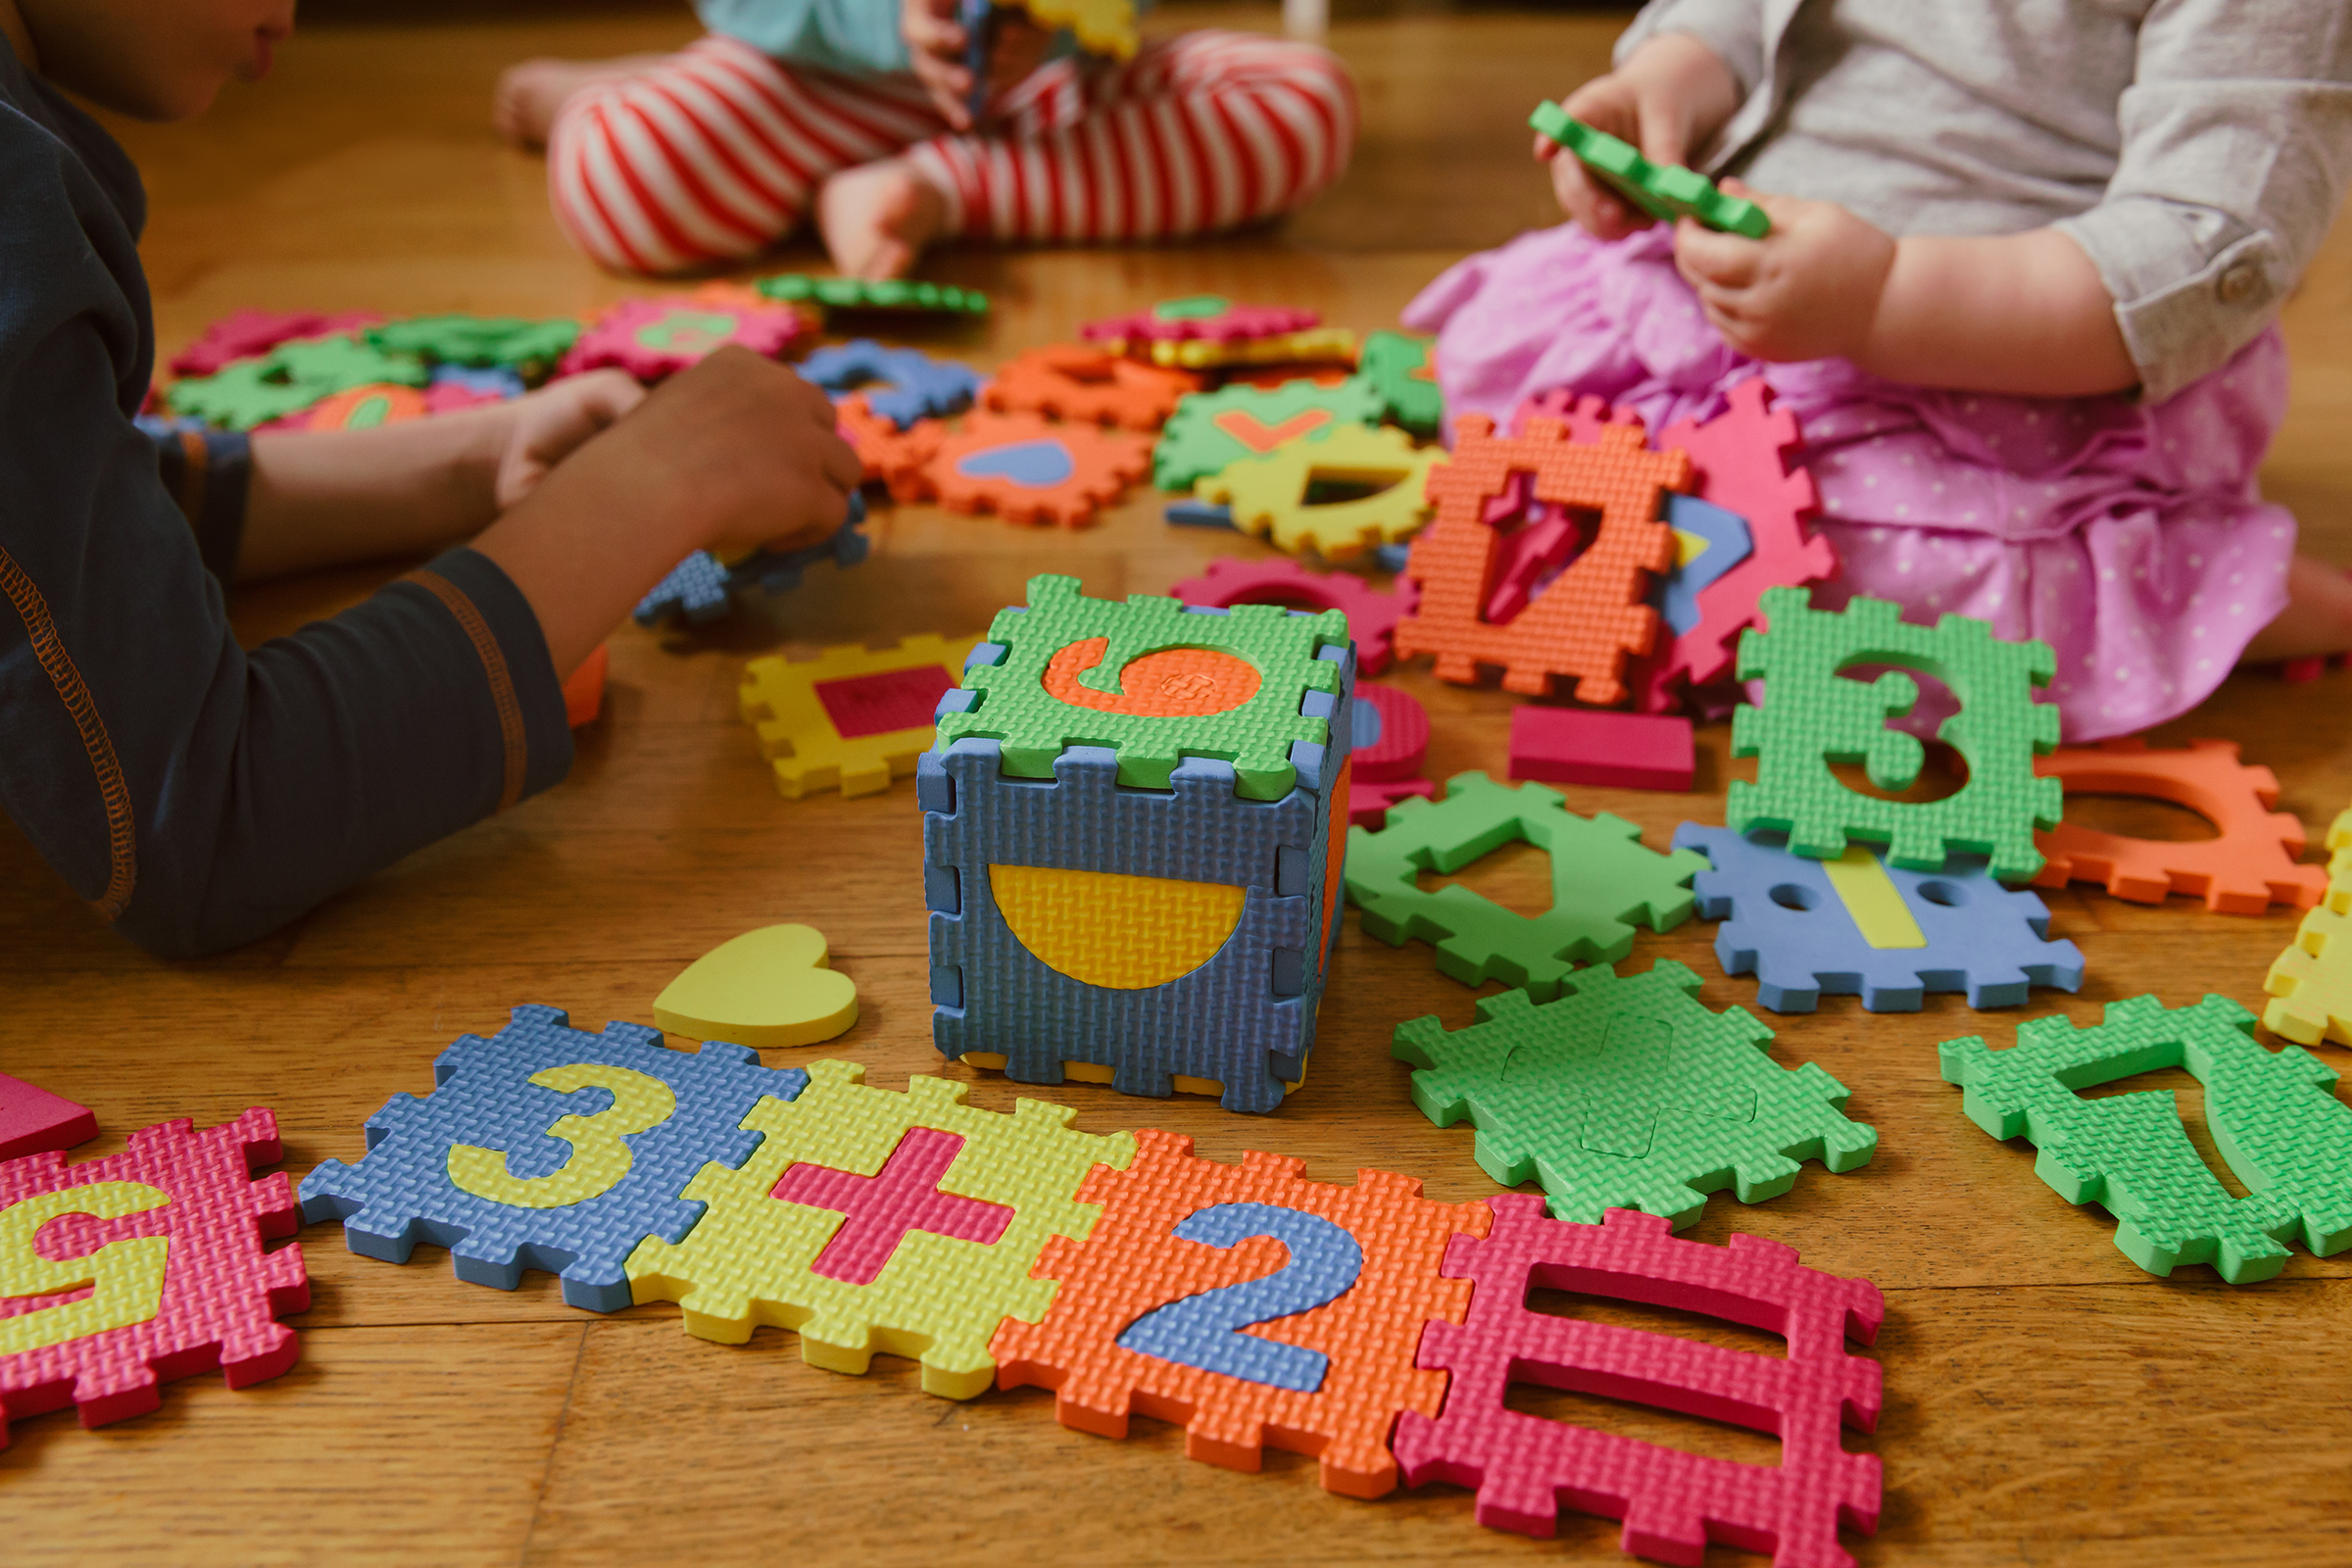 Kids playing with a puzzle.